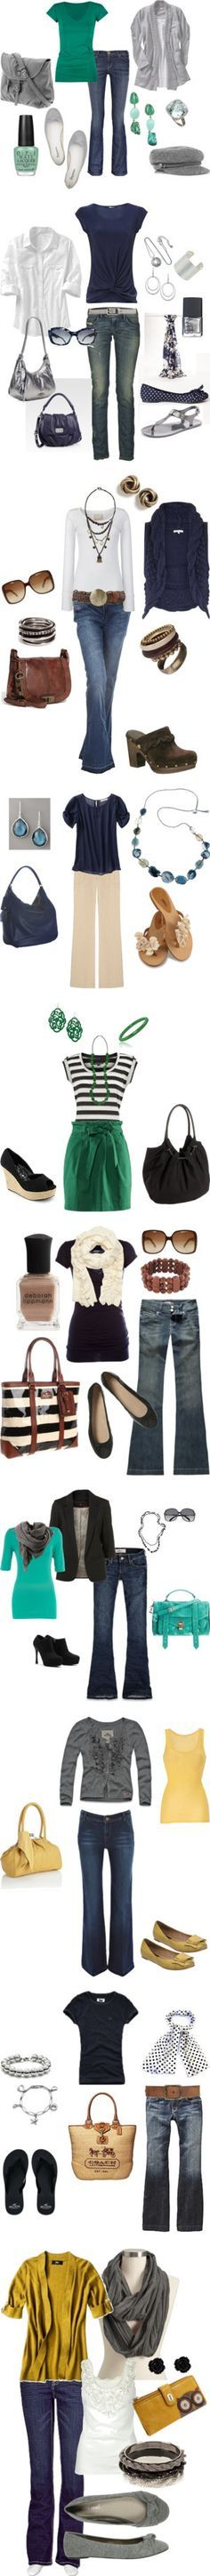 """Teaching"" by ashley-toomey ❤ liked on Polyvore"